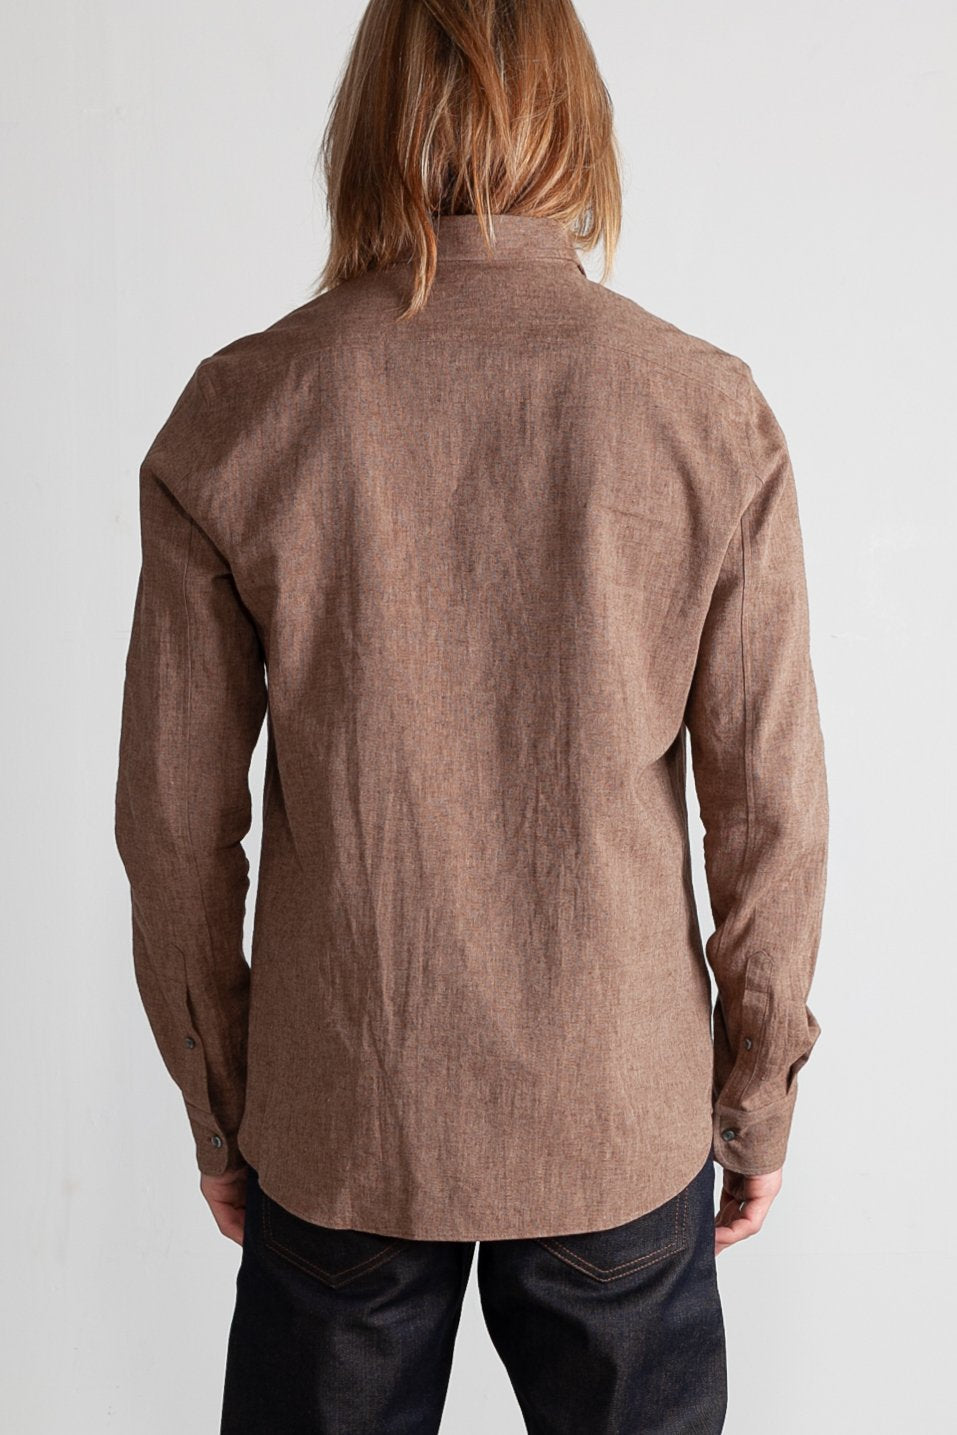 Japanese Euro Linen in Brown 04